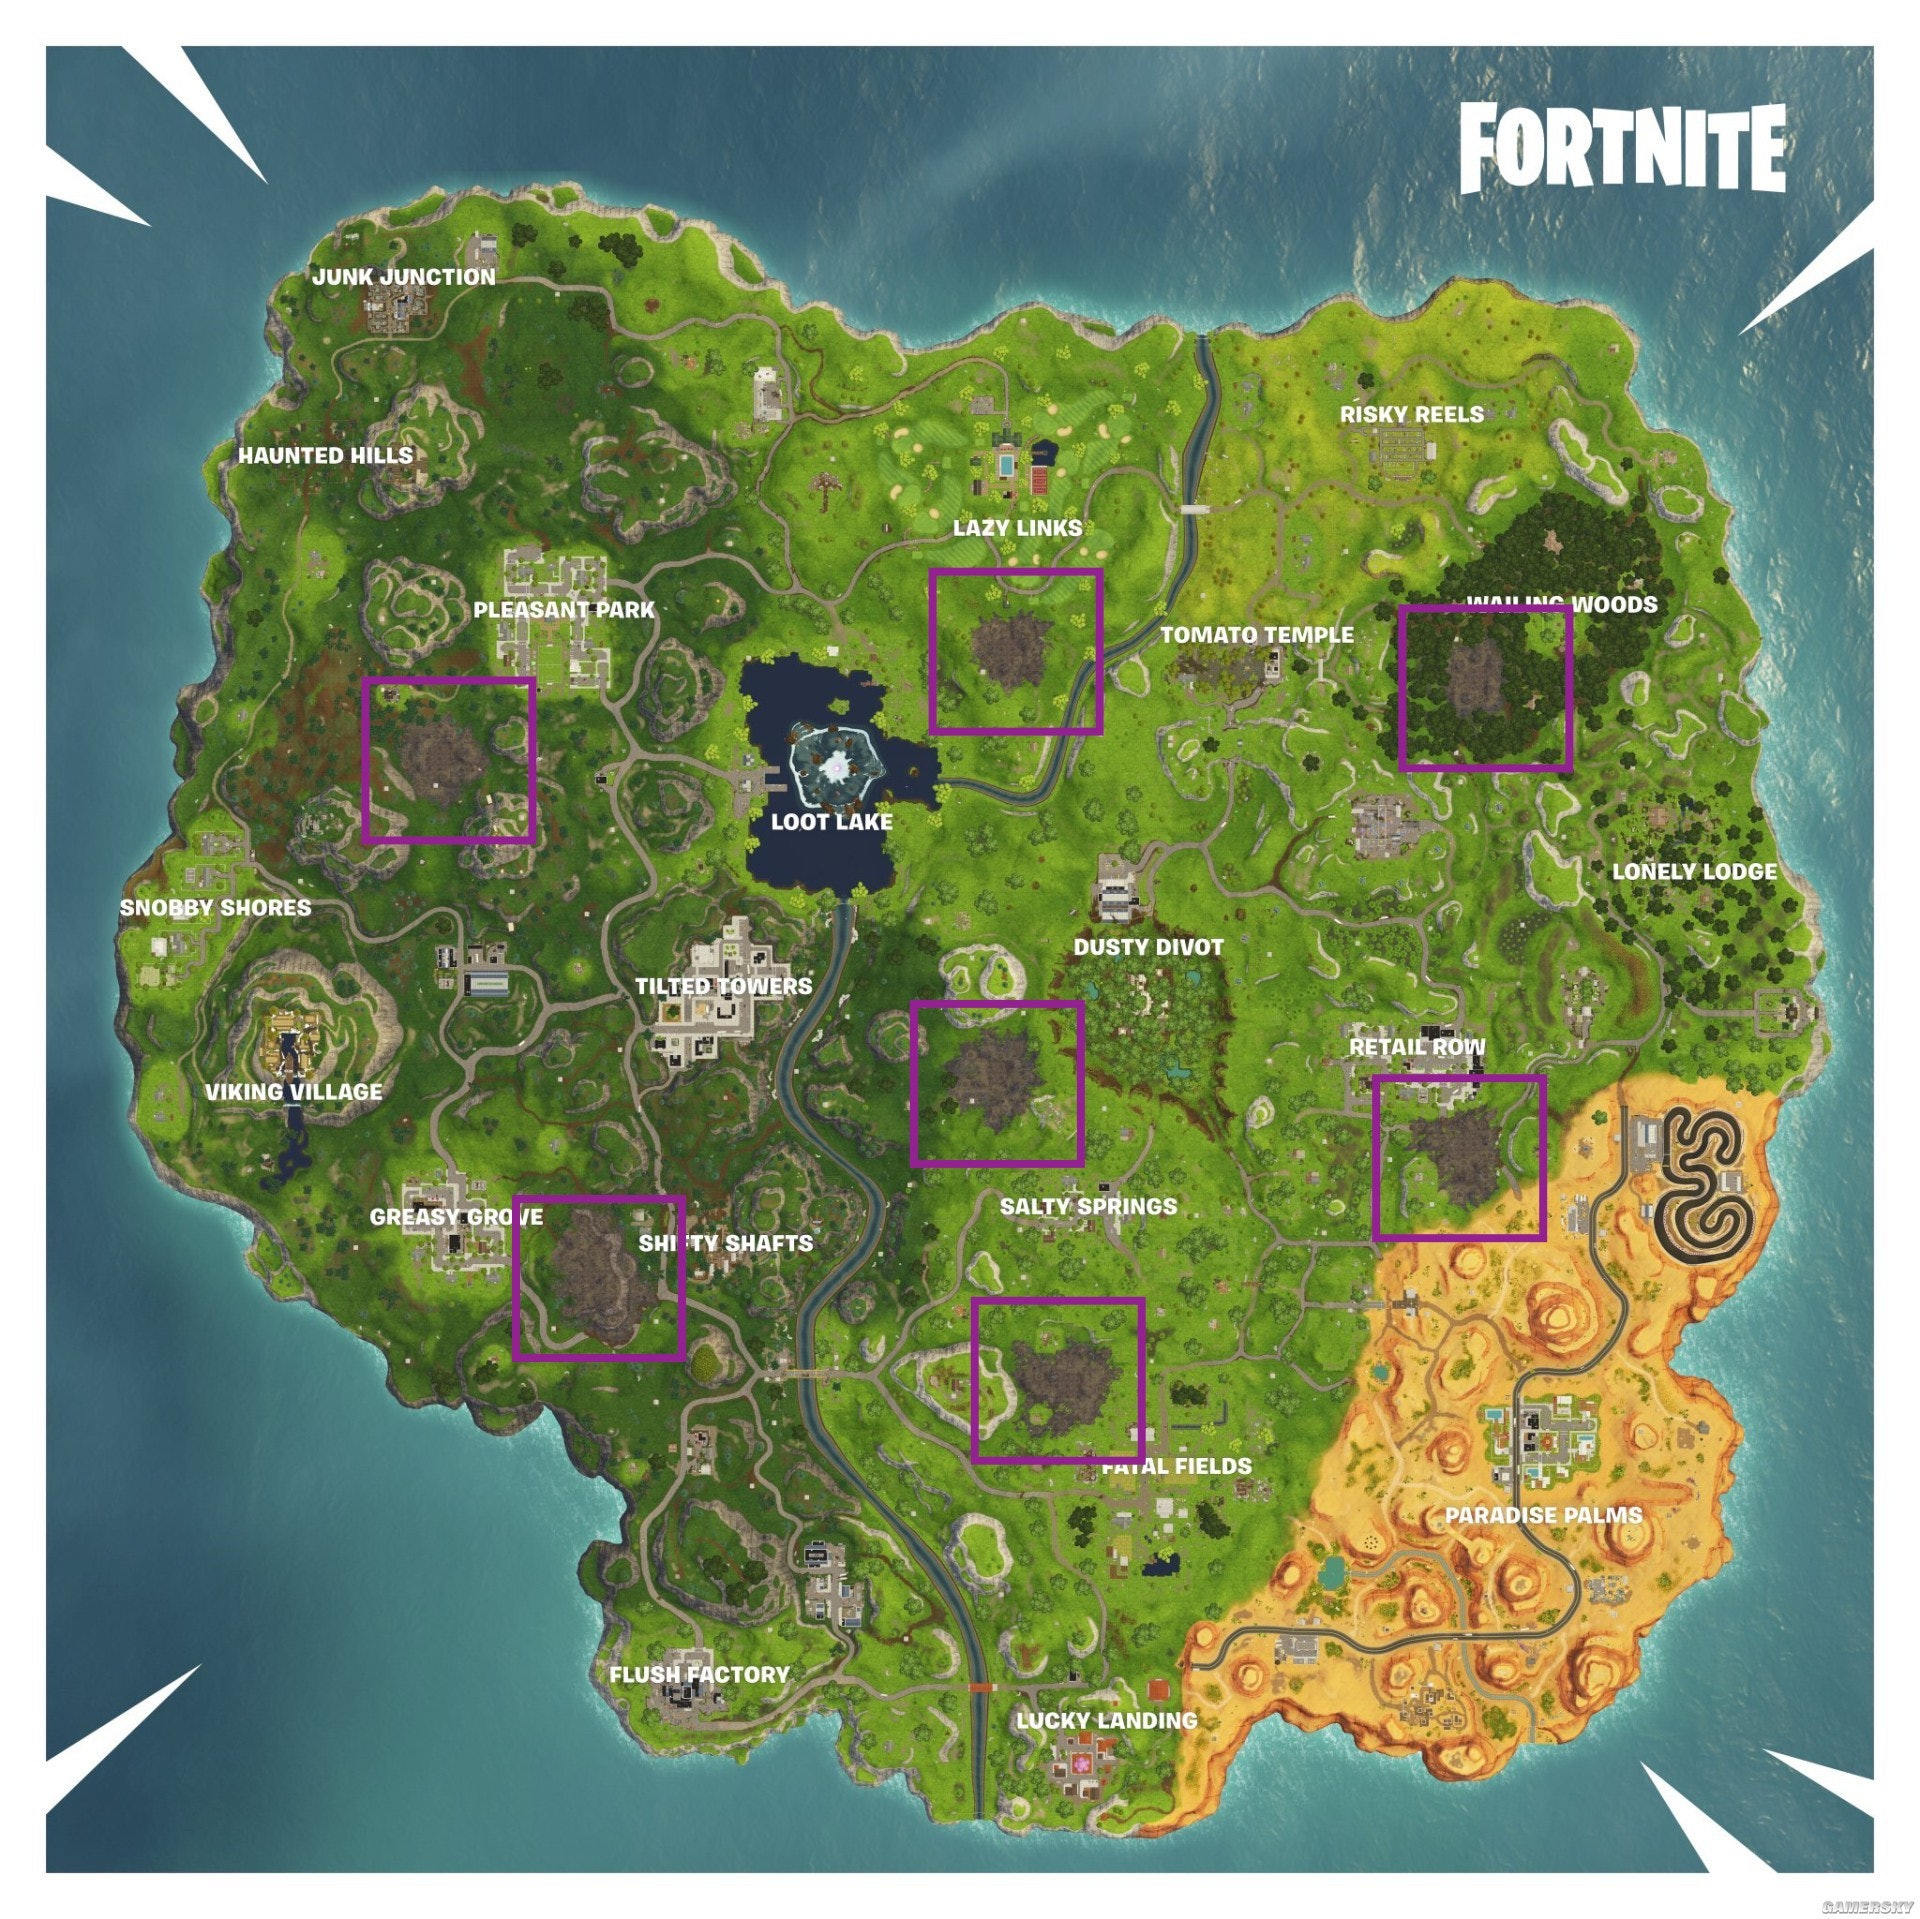 'Fortnite' Corrupted Areas